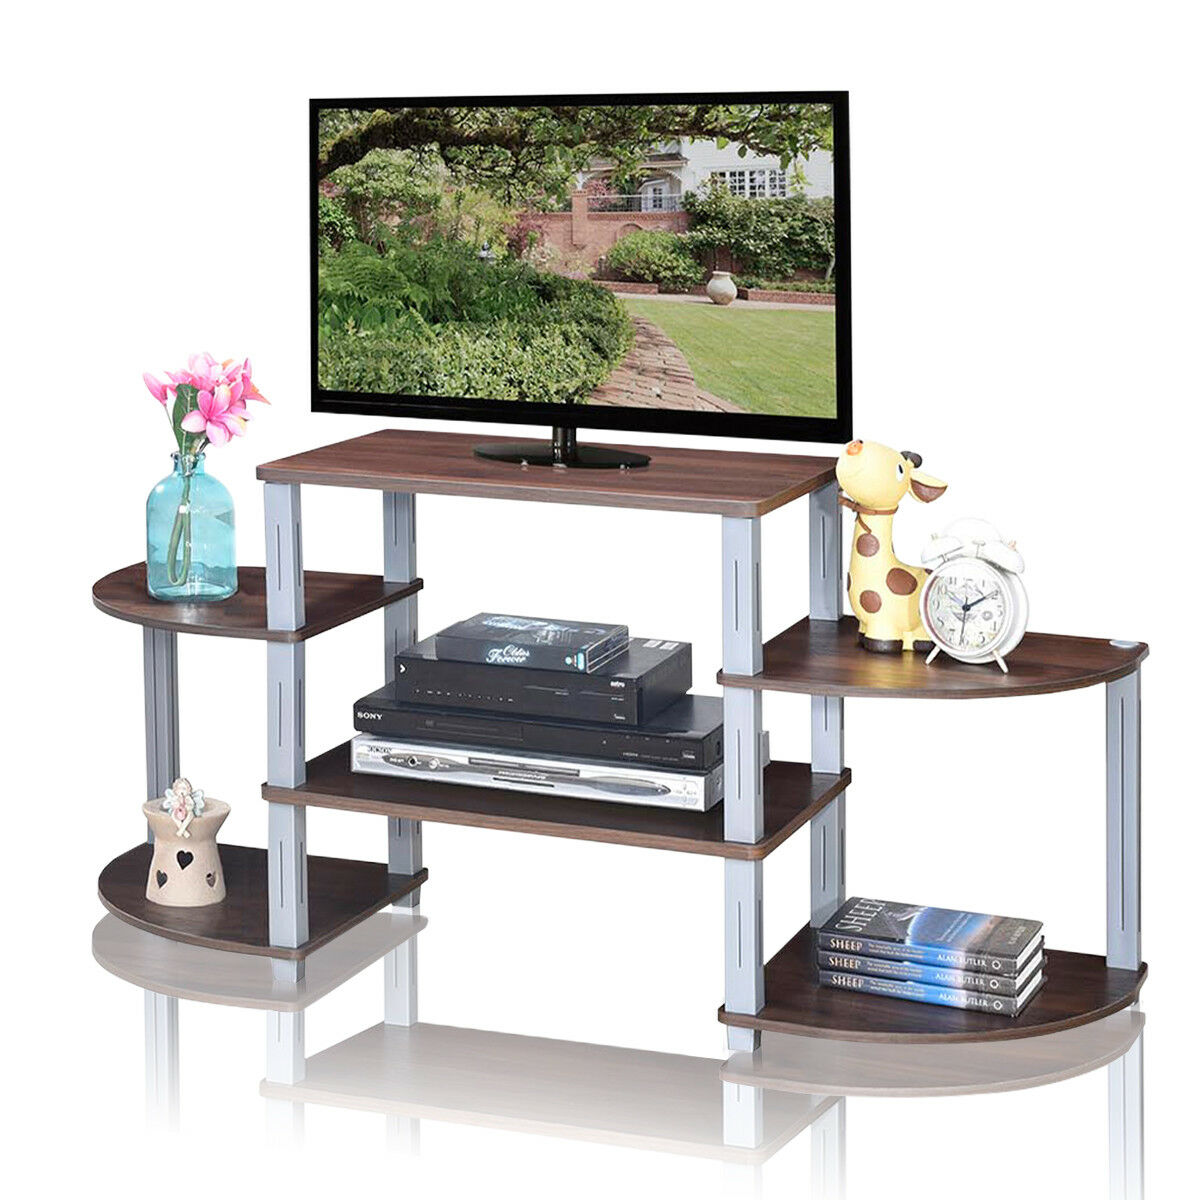 Costway 3-Cube Flat Screen TV Stand Entertainment Center Media Console Storage Shelves